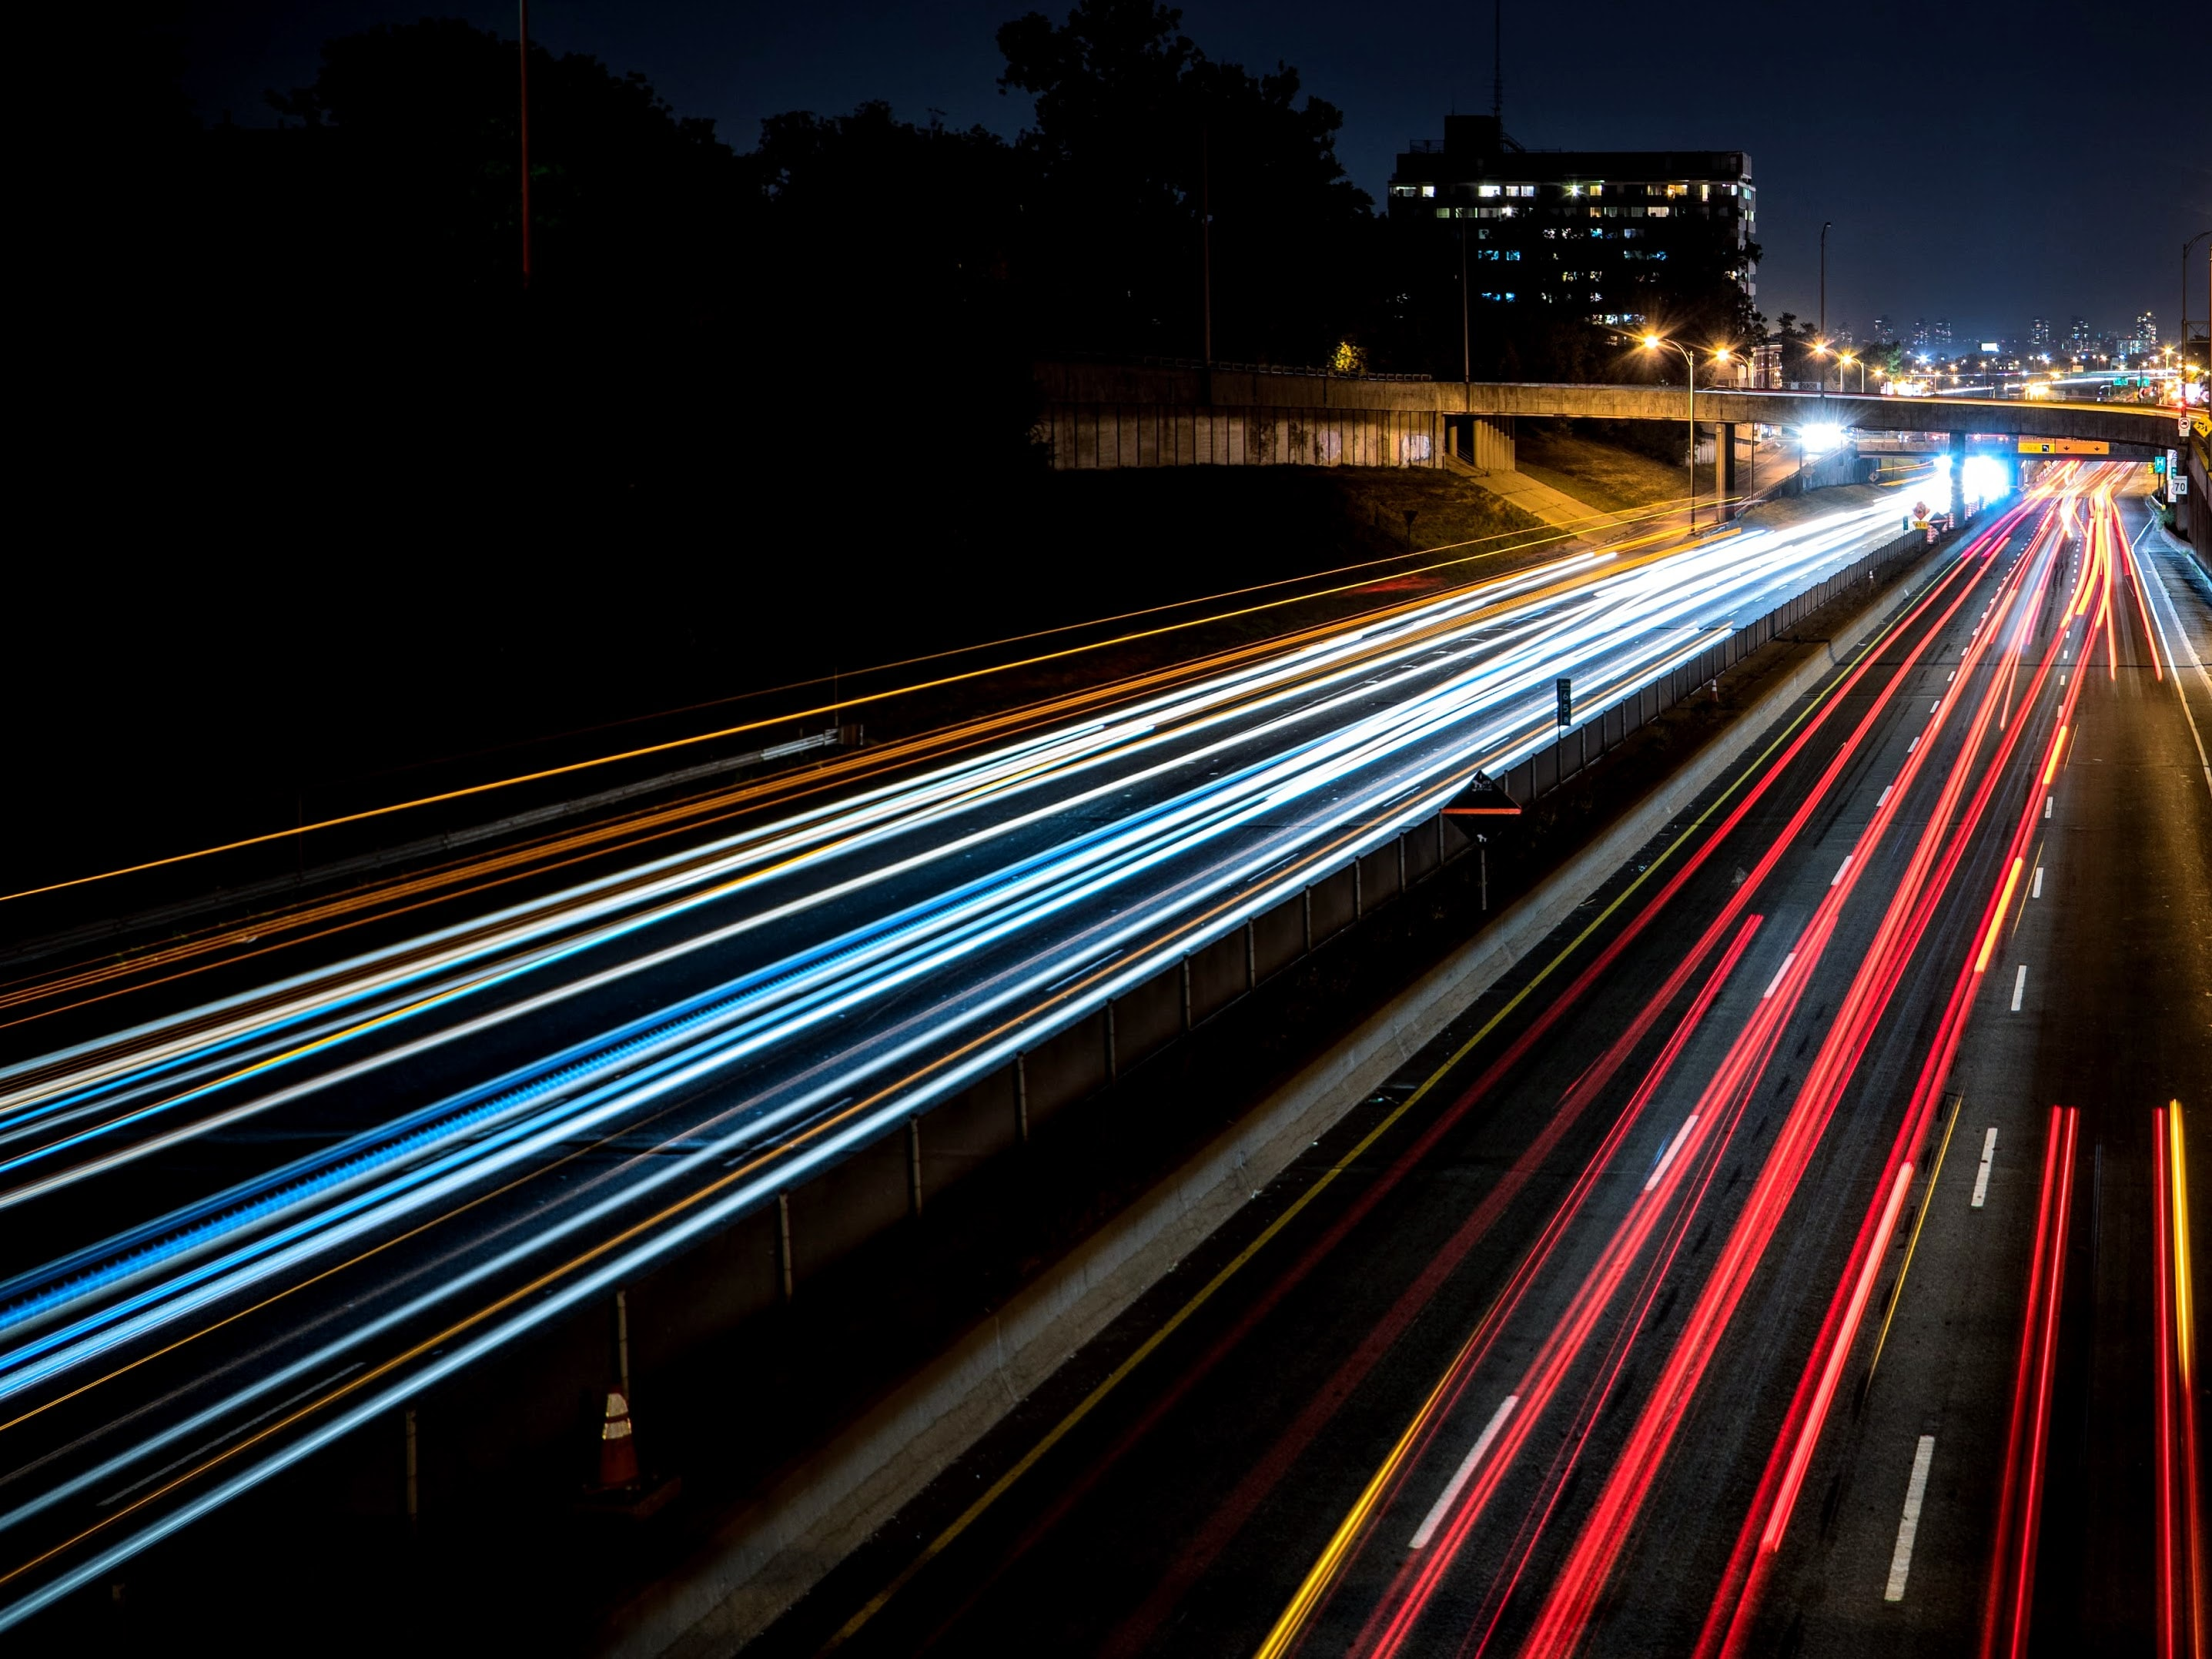 time-lapse photography of cars passing through the road during night time